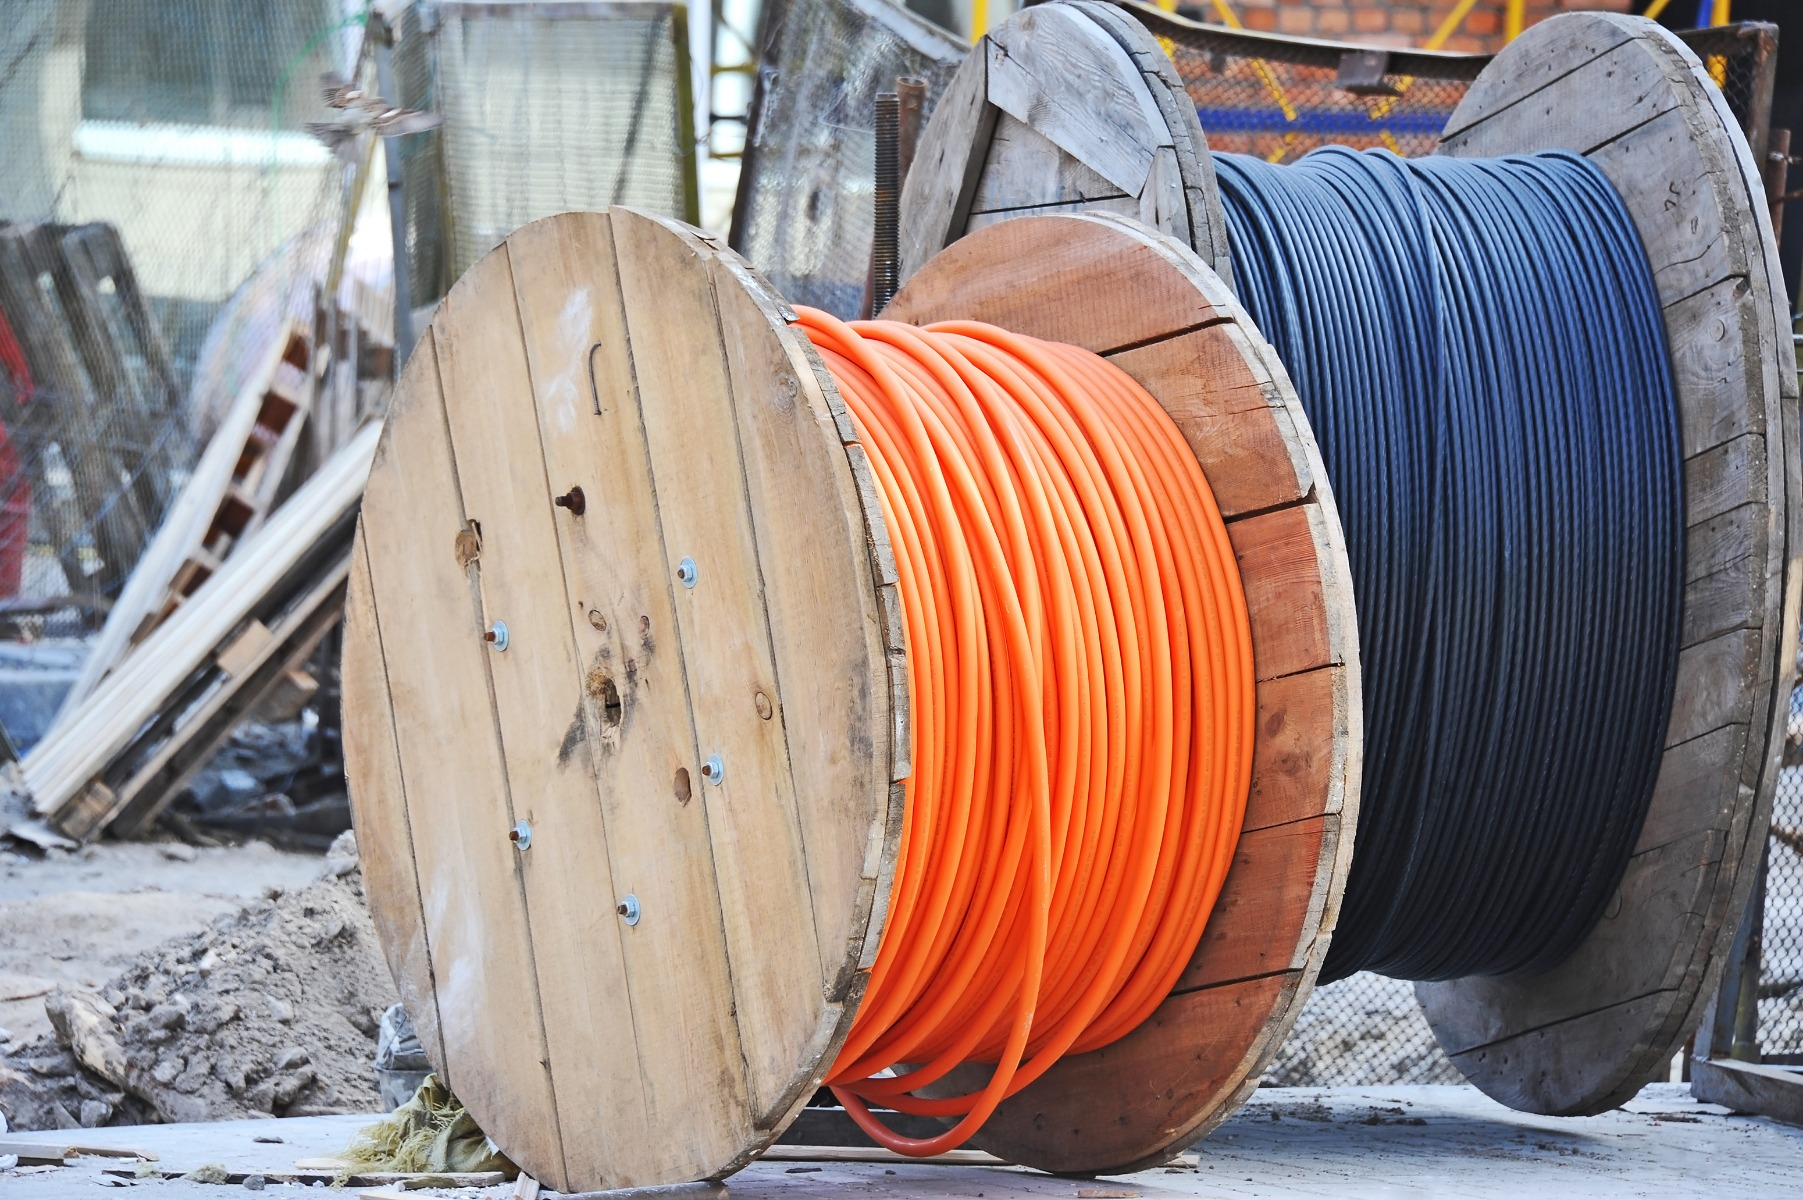 Two reels of wire